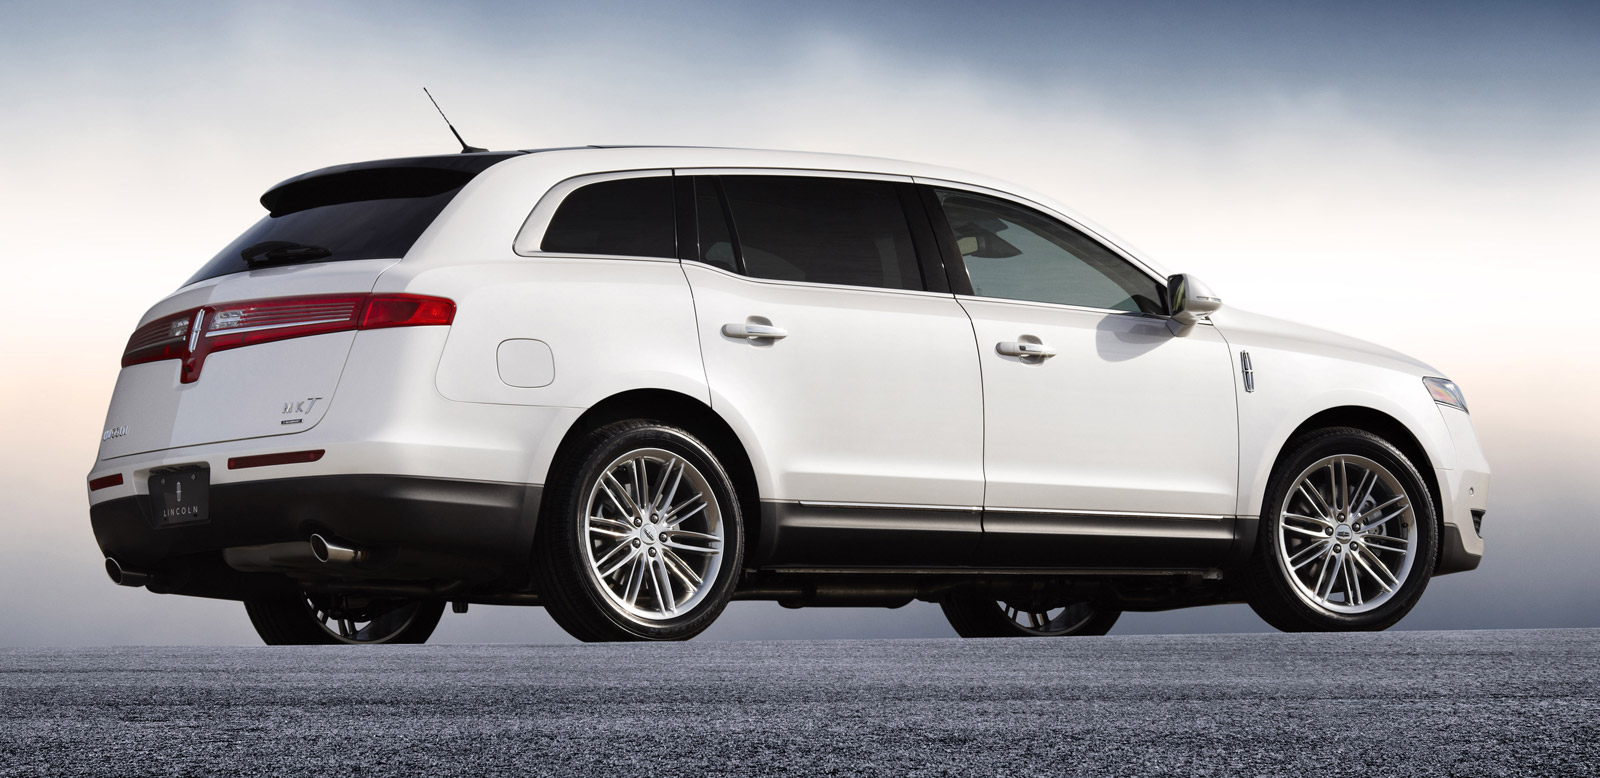 2013 lincoln mkt full size luxury crossover gets a refresh